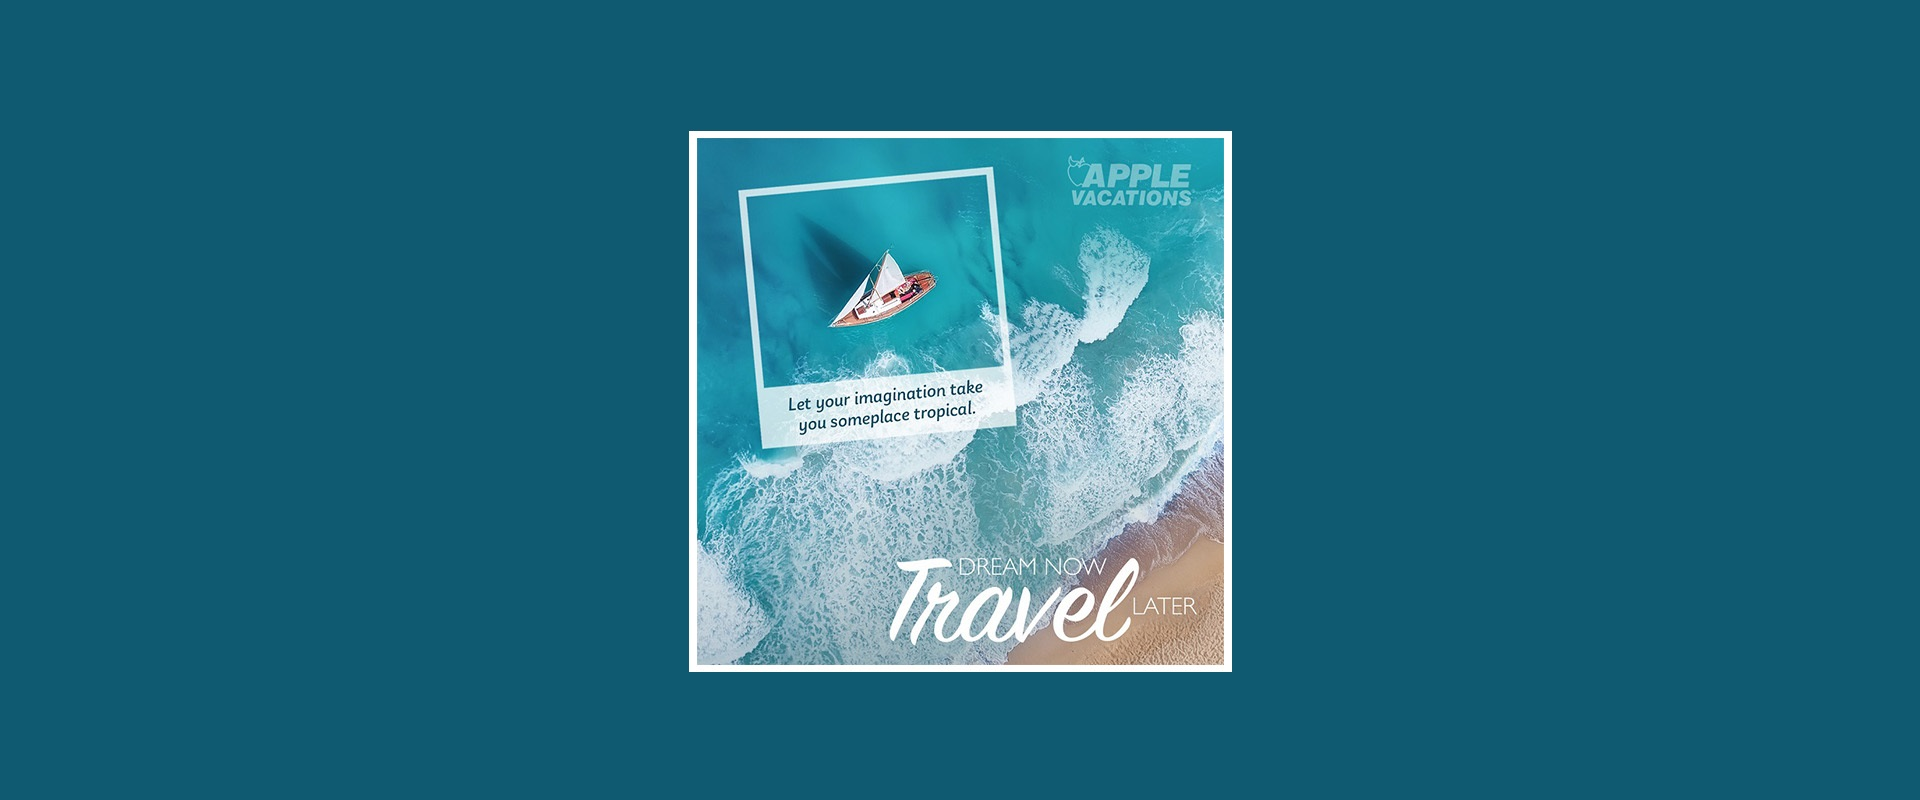 Dream-Now-Travel-Later-Banner